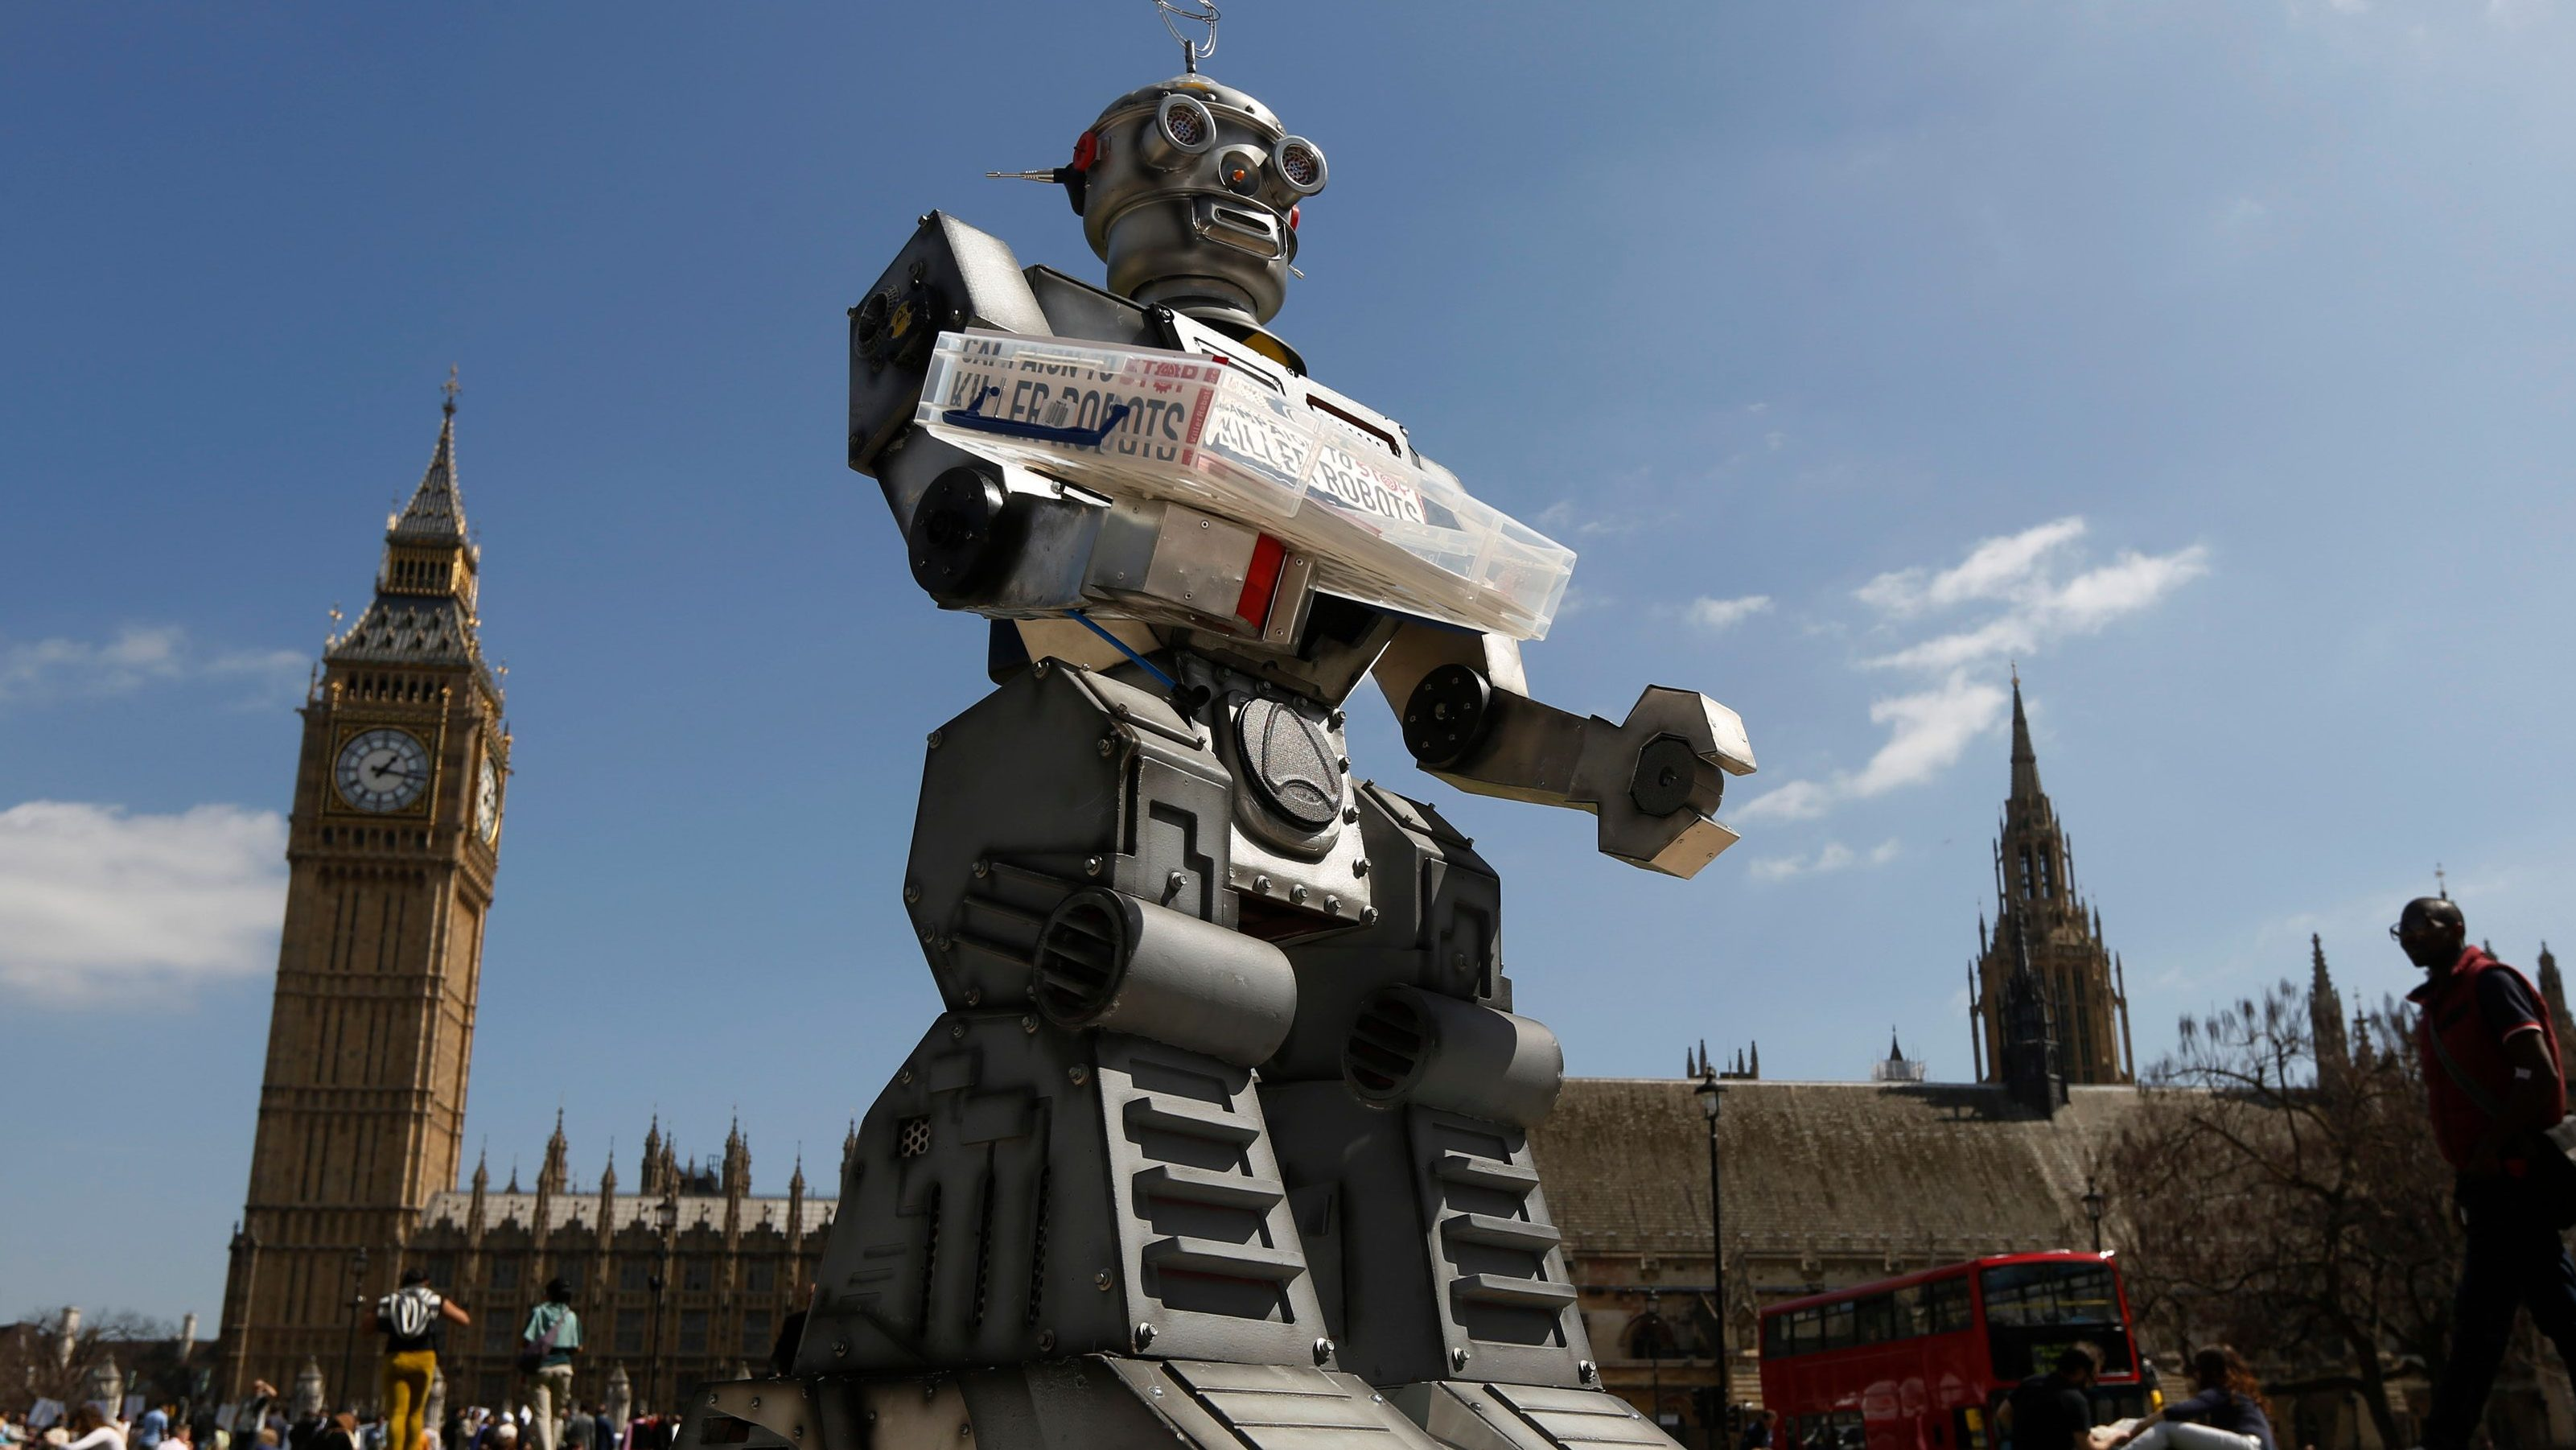 A robot is pictured in front of the Houses of Parliament and Westminster Abbey as part of the Campaign to Stop Killer Robots in London.